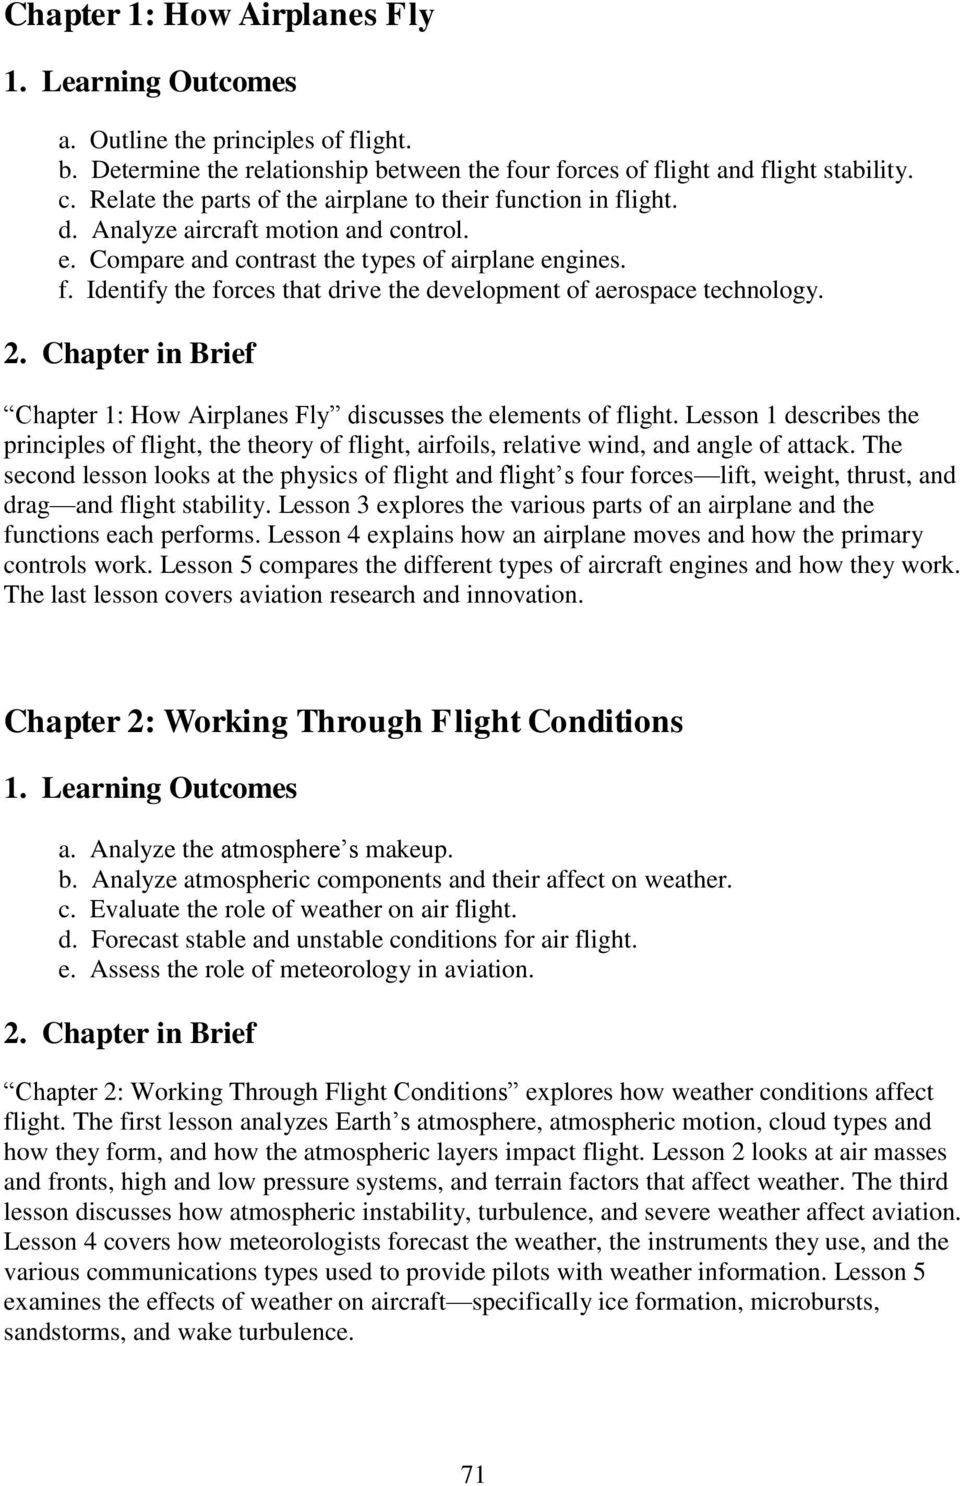 Chapter in Brief discusses the elements of flight. Lesson 1 describes the principles of flight, the theory of flight, airfoils, relative wind, and angle of attack.